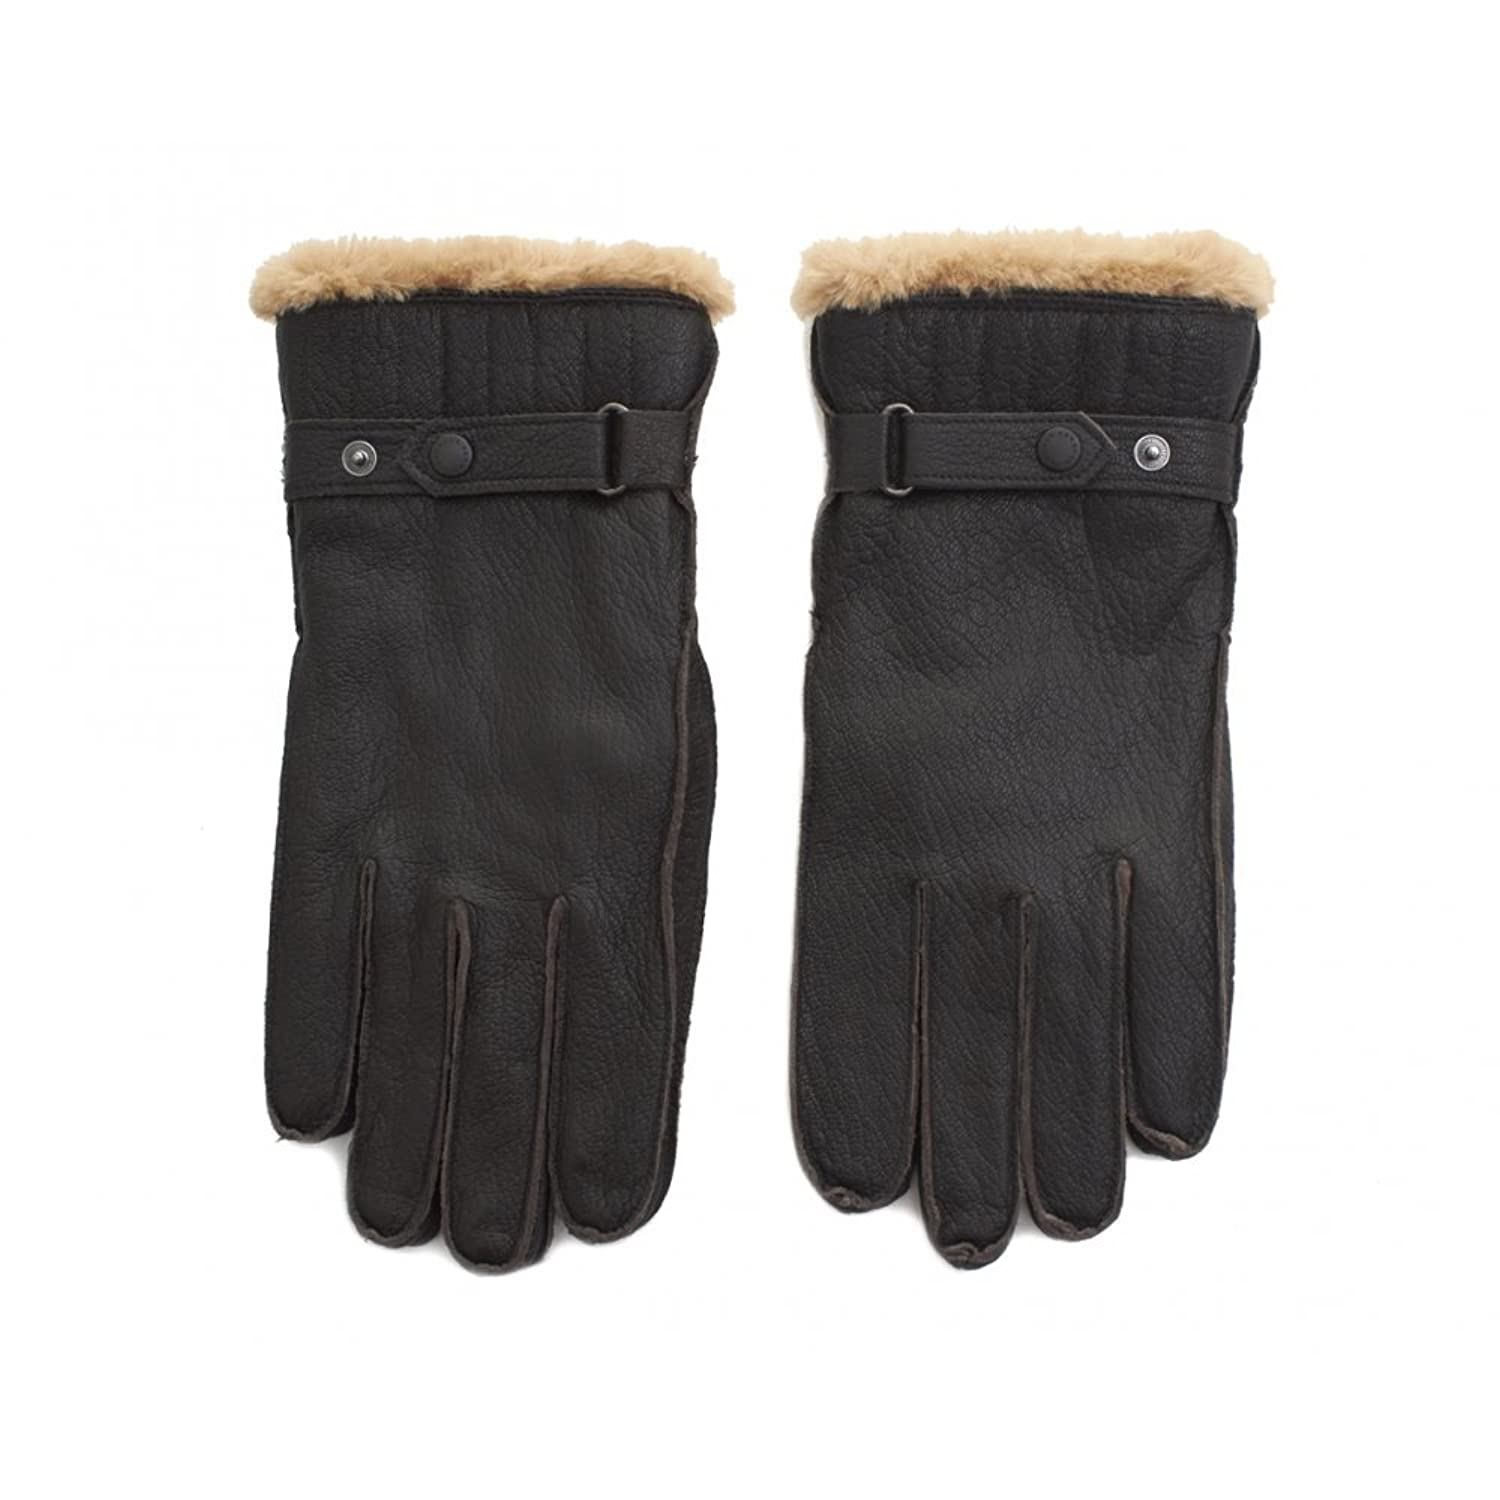 Barbour black leather utility gloves - Barbour Black Leather Utility Gloves 25